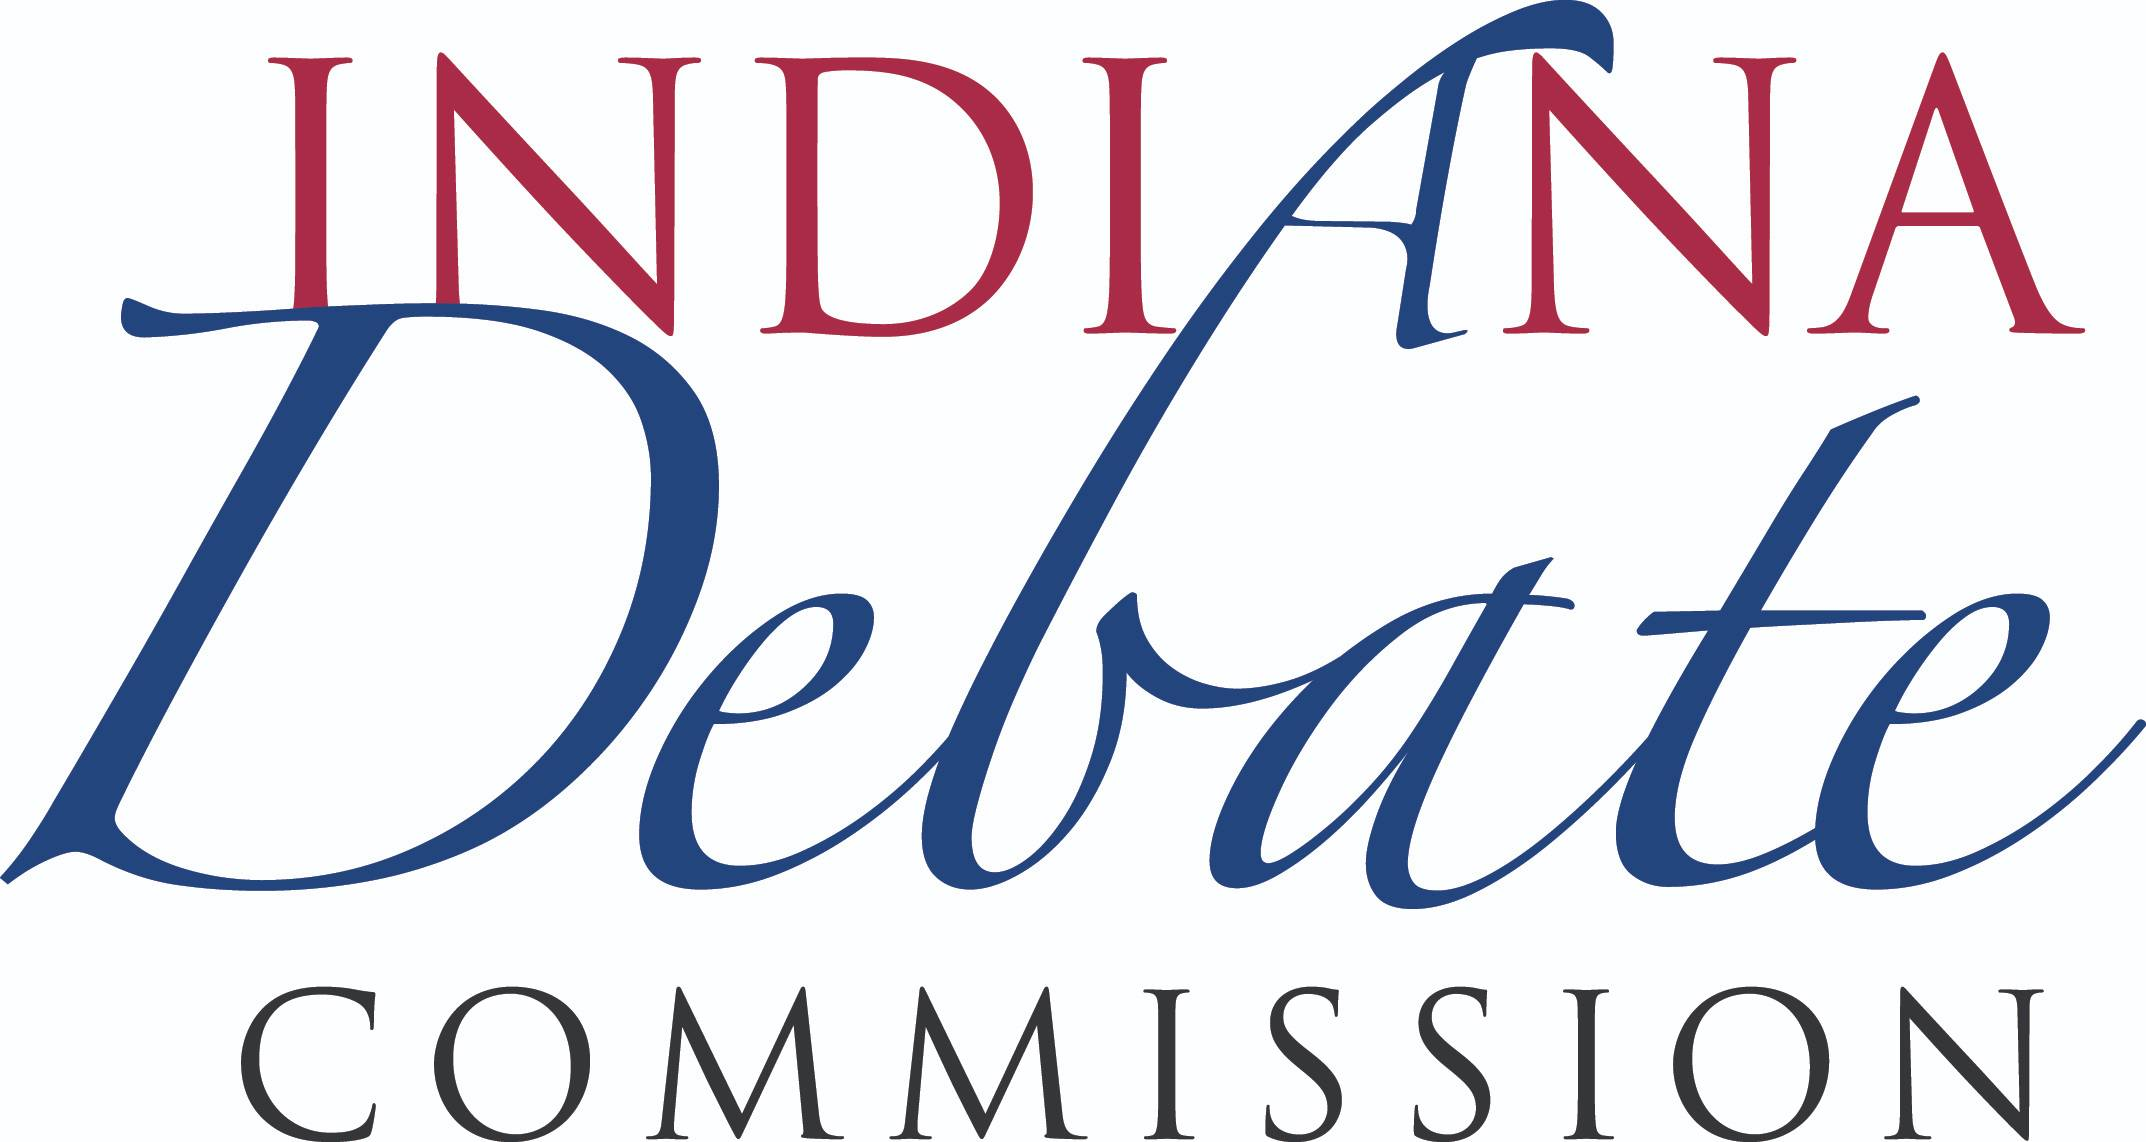 Indiana Debate Commission logo